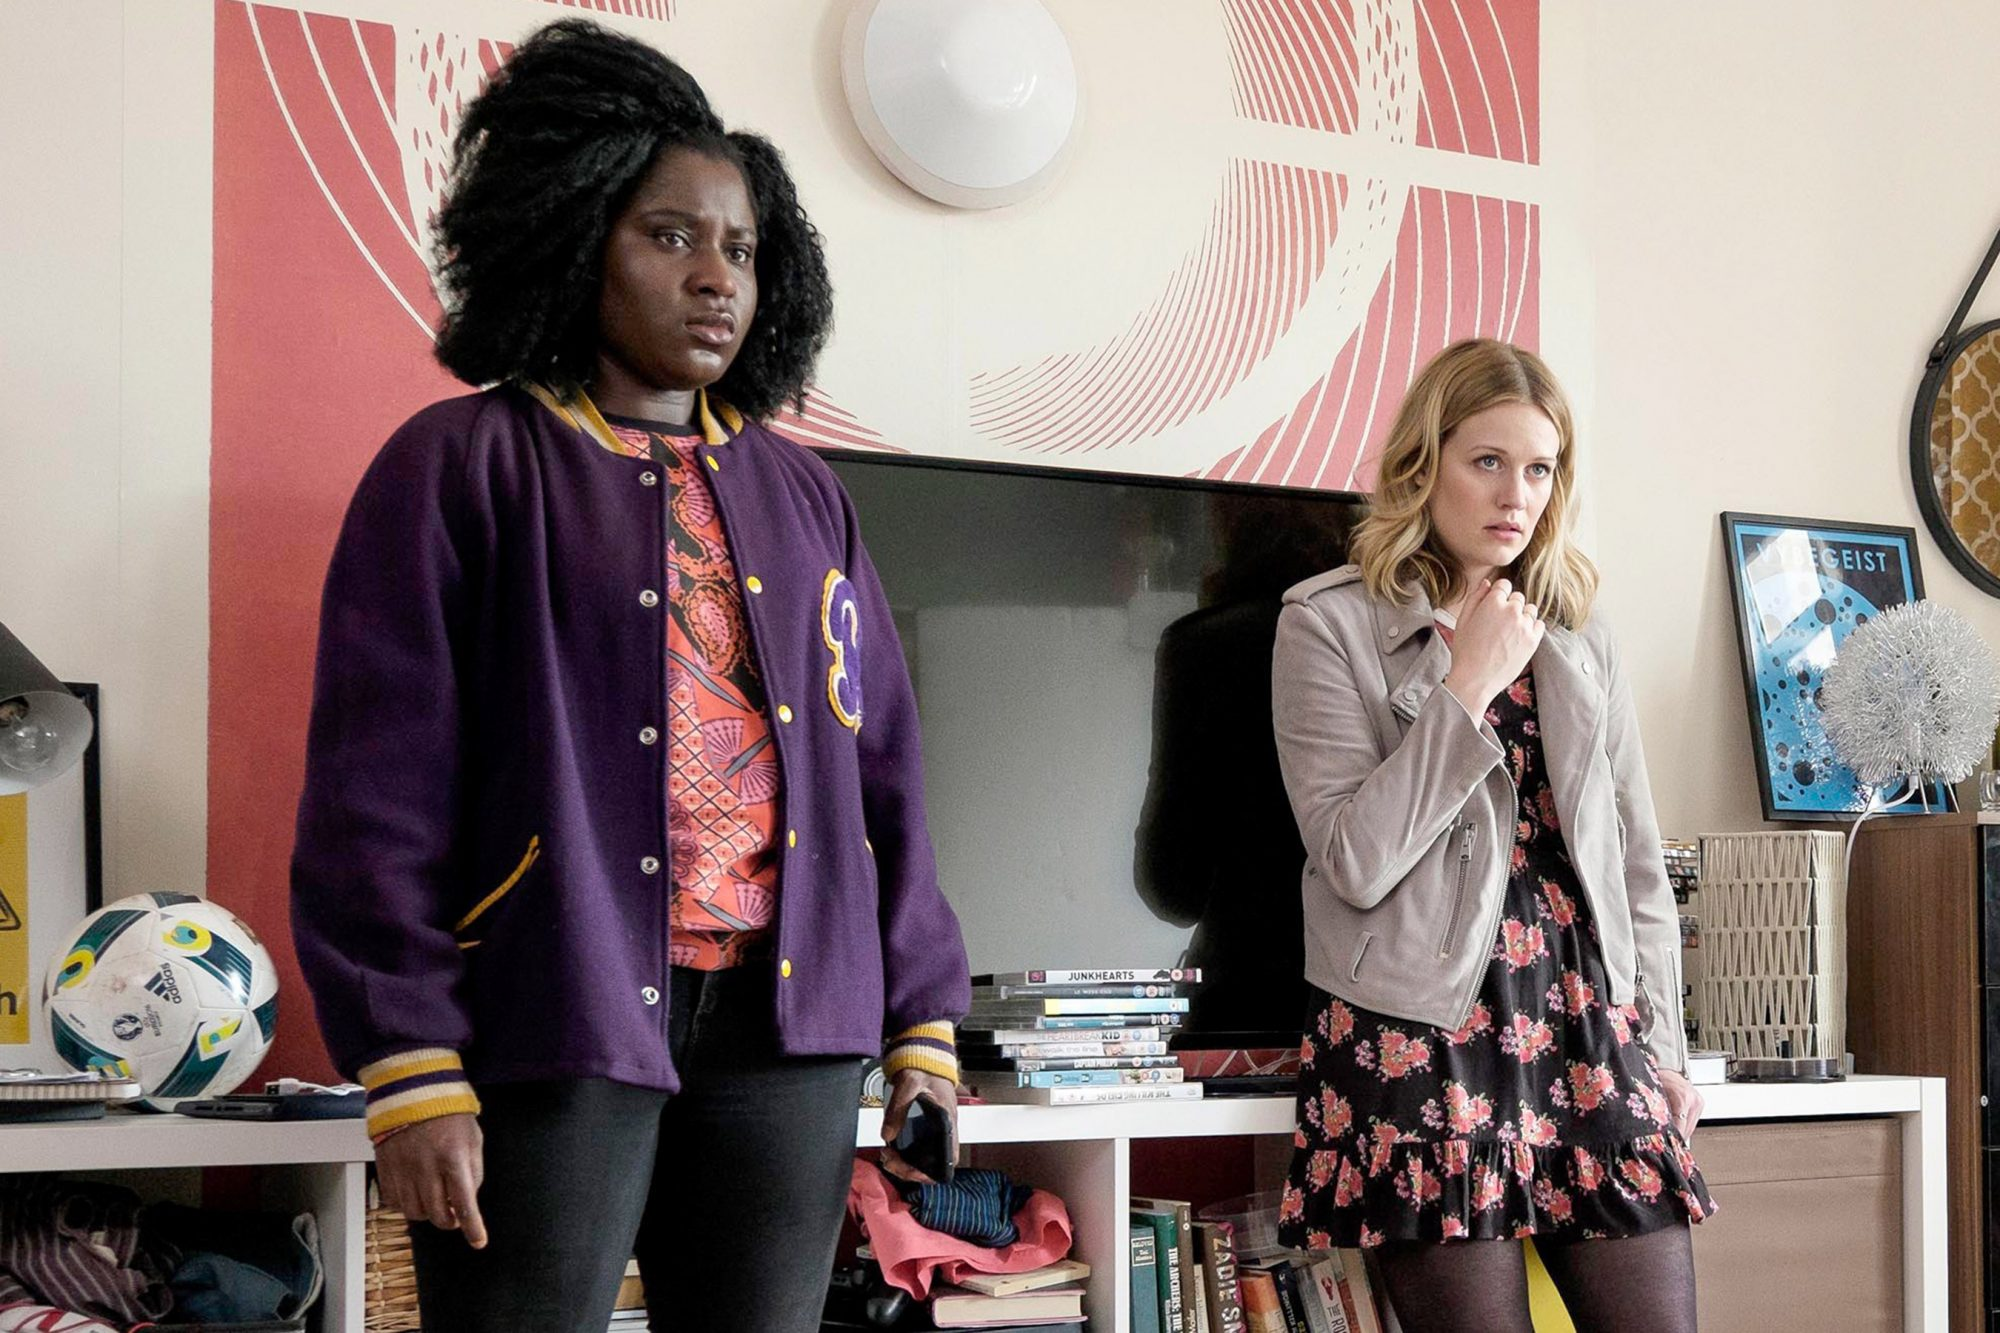 CRAZYHEAD, (from left): Susan Wokoma, Cara Theobold, 'Shave the Cat', (Season 1, ep. 103, aired in